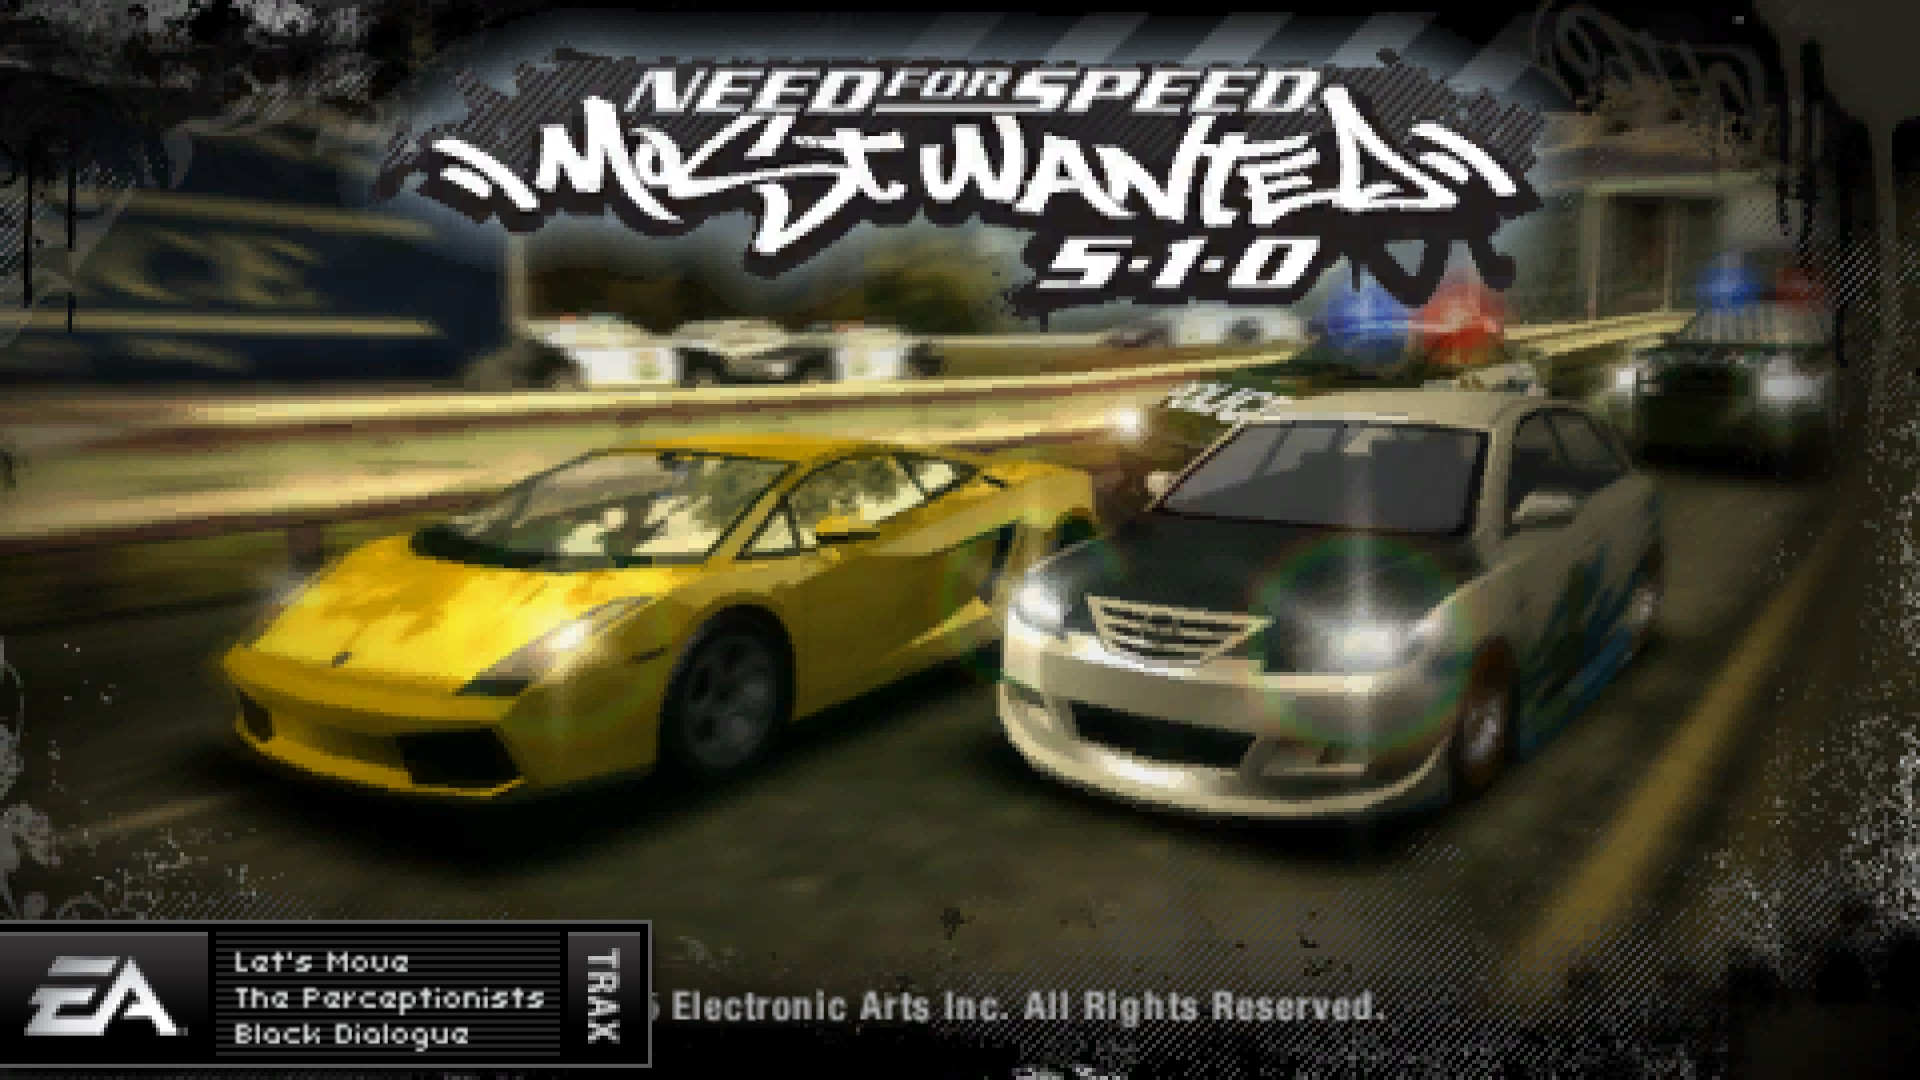 ... Thumbnail / Media File 1 for Need for Speed - Most Wanted 5-1-0 (USA